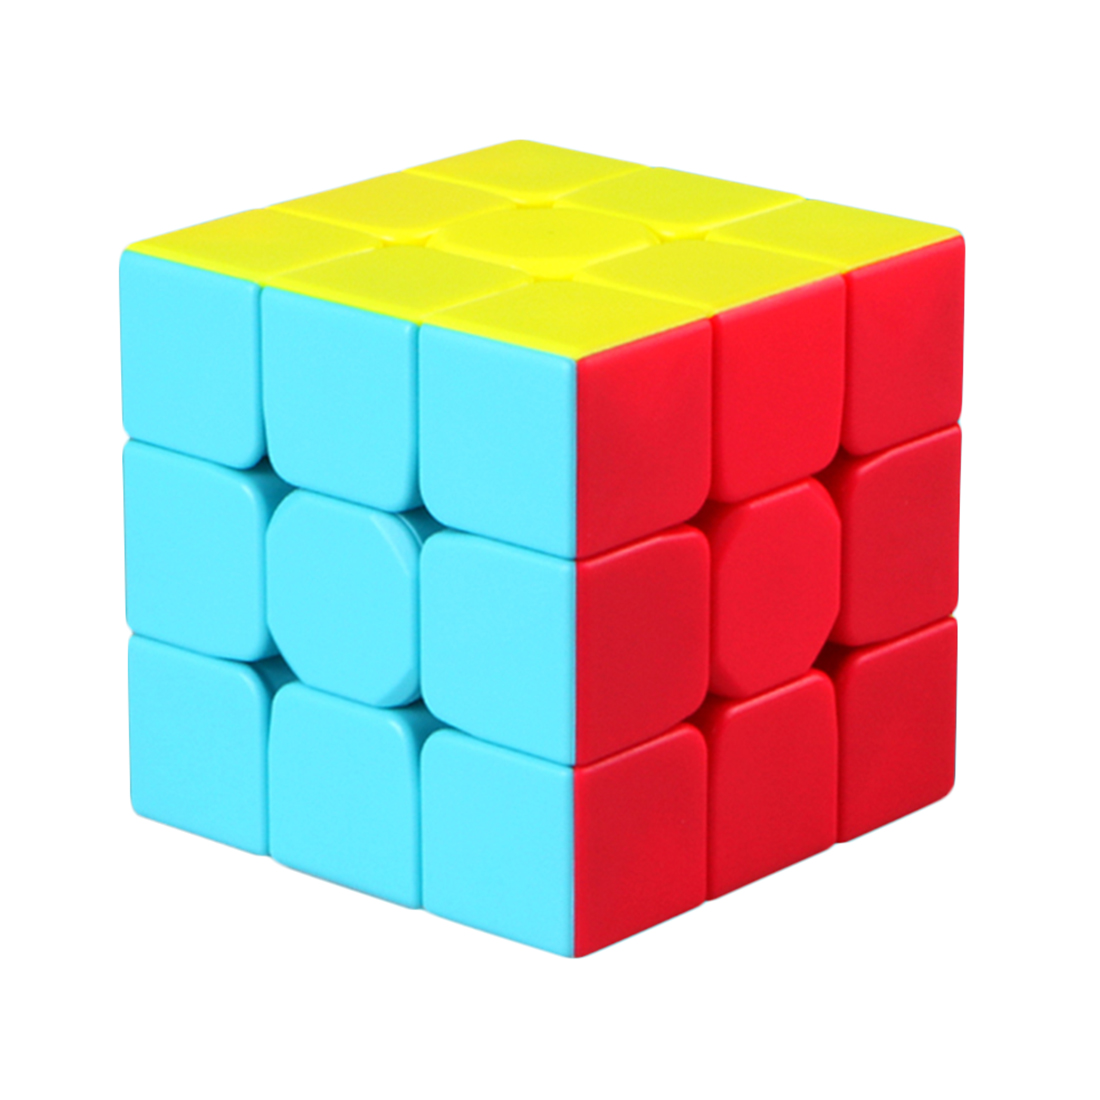 surwish Qiyi Mofangge Warrior 5.7cm 3*3*3 Speedcube Color